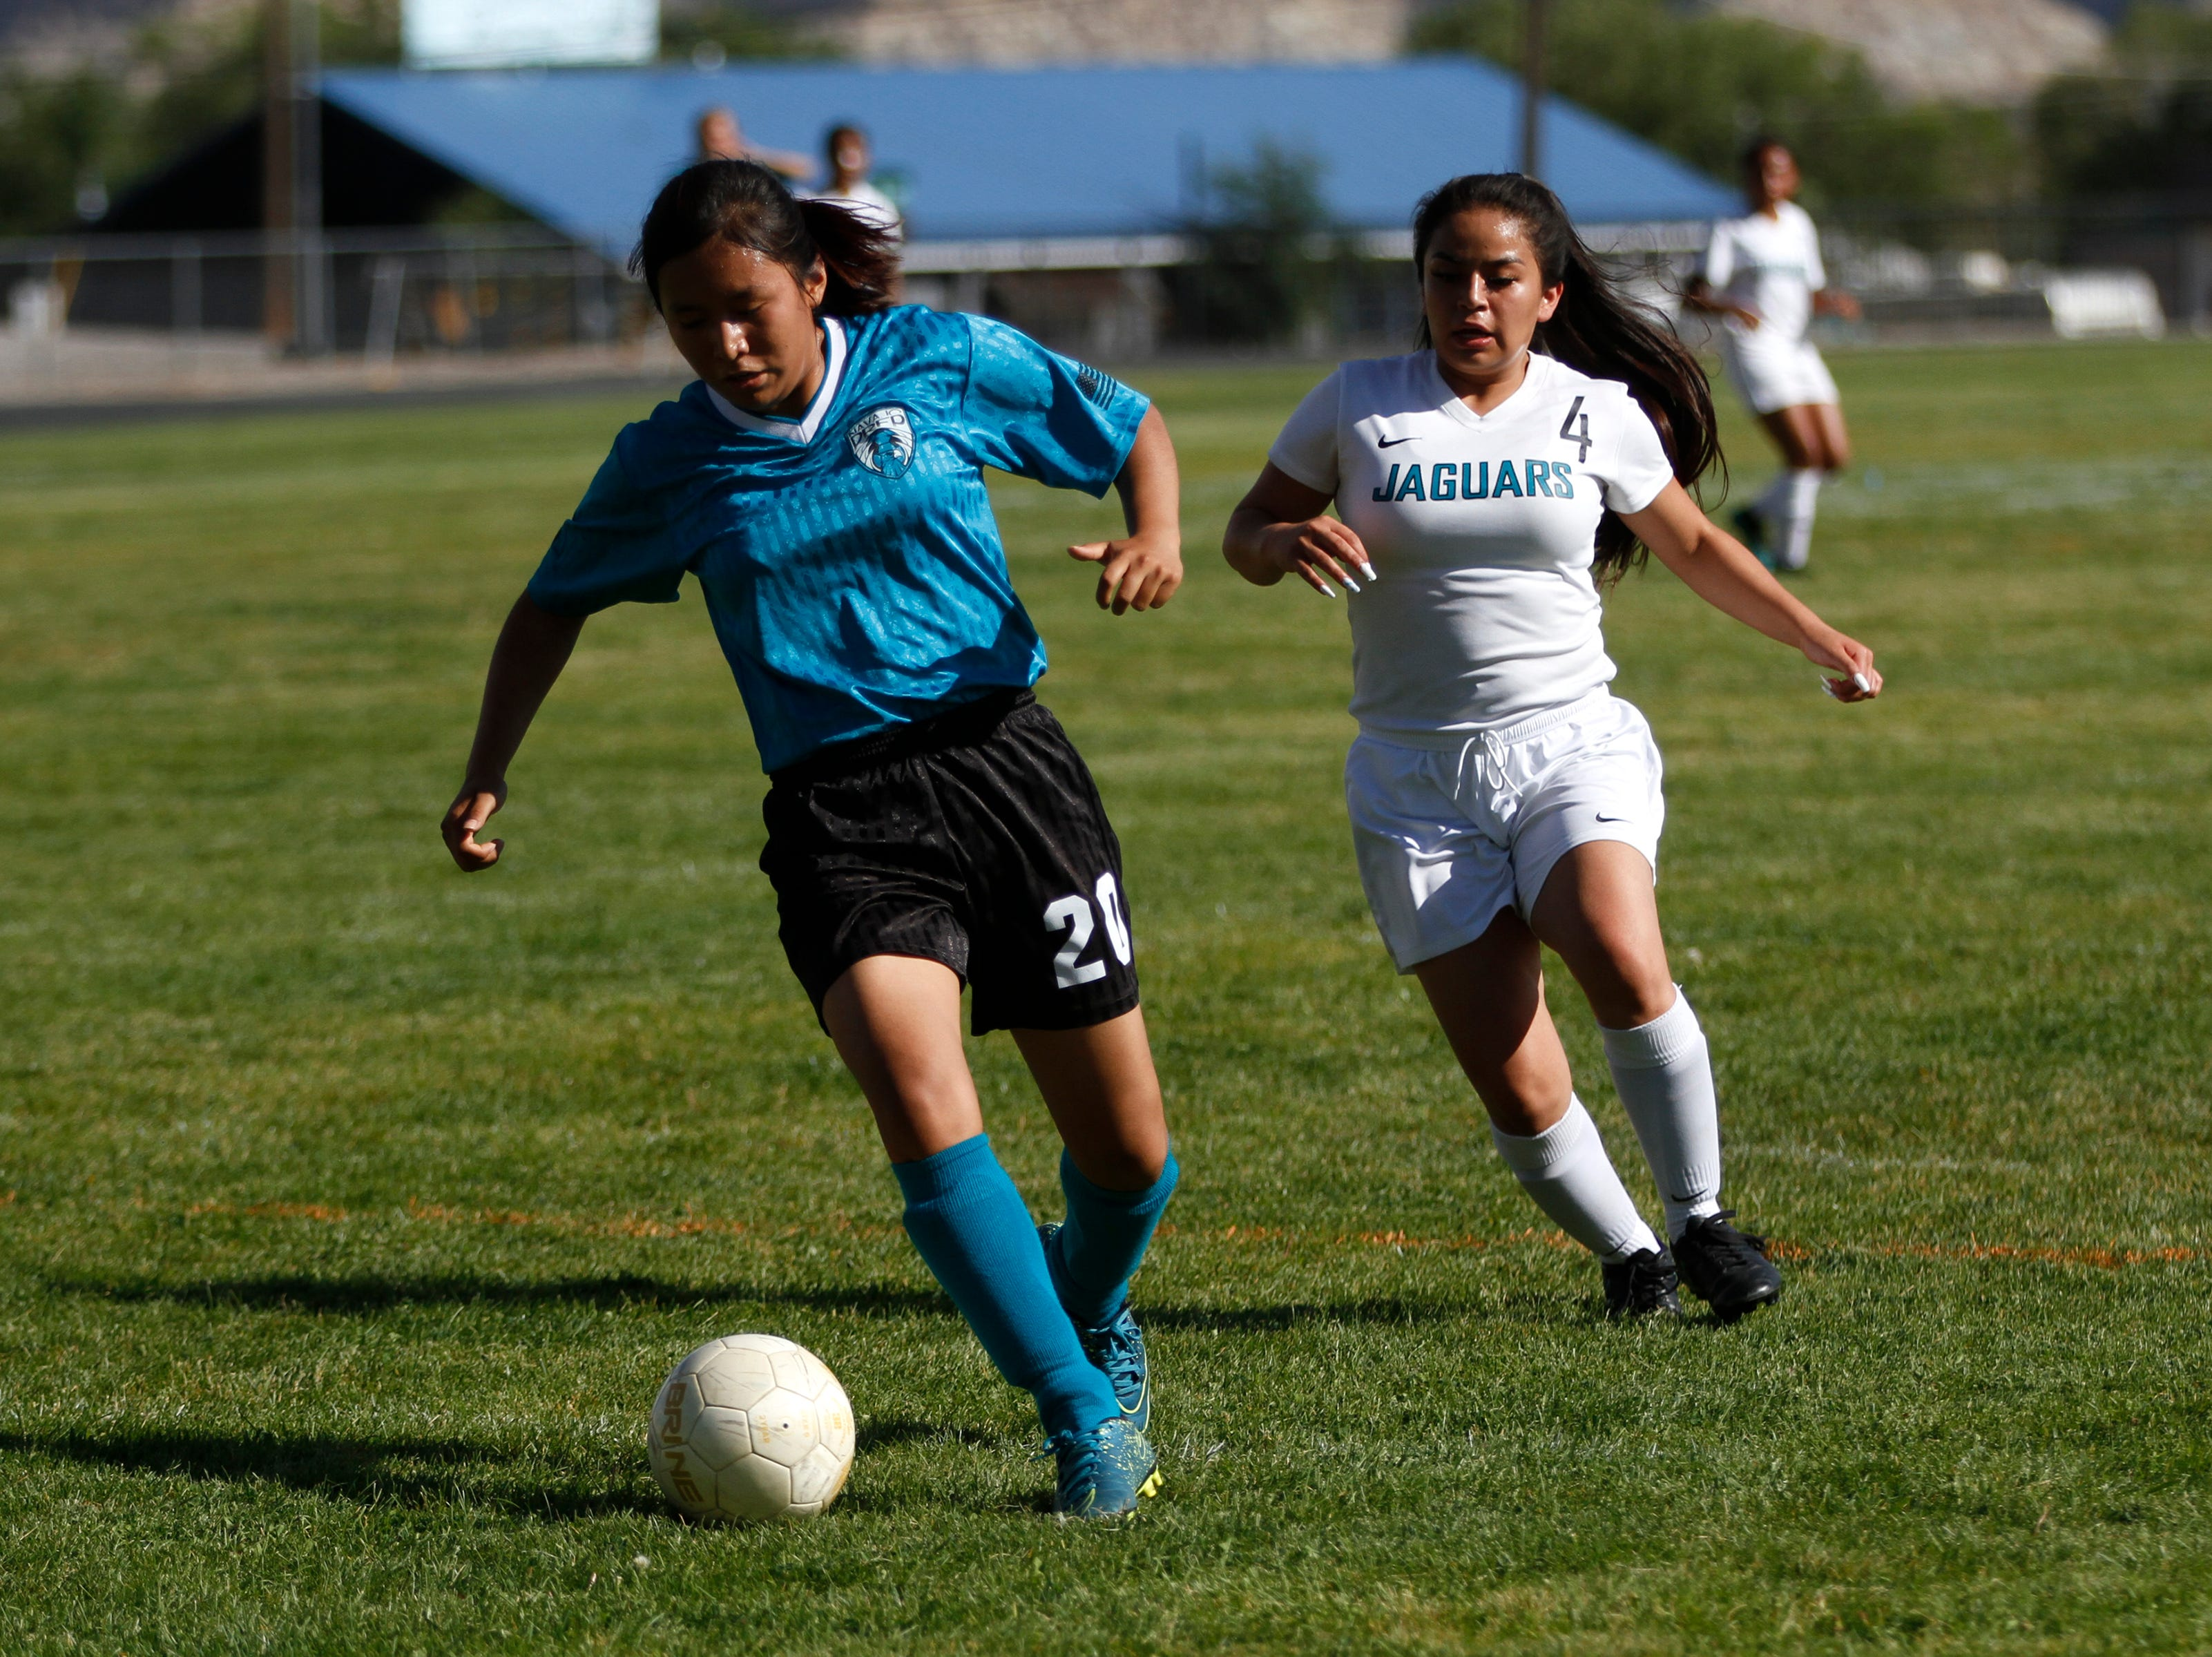 Navajo Prep's Kylie Begay moves the ball up field during their game against Capital, Tuesday, Sept. 11, 2018 at Eagle Stadium in Farmington.